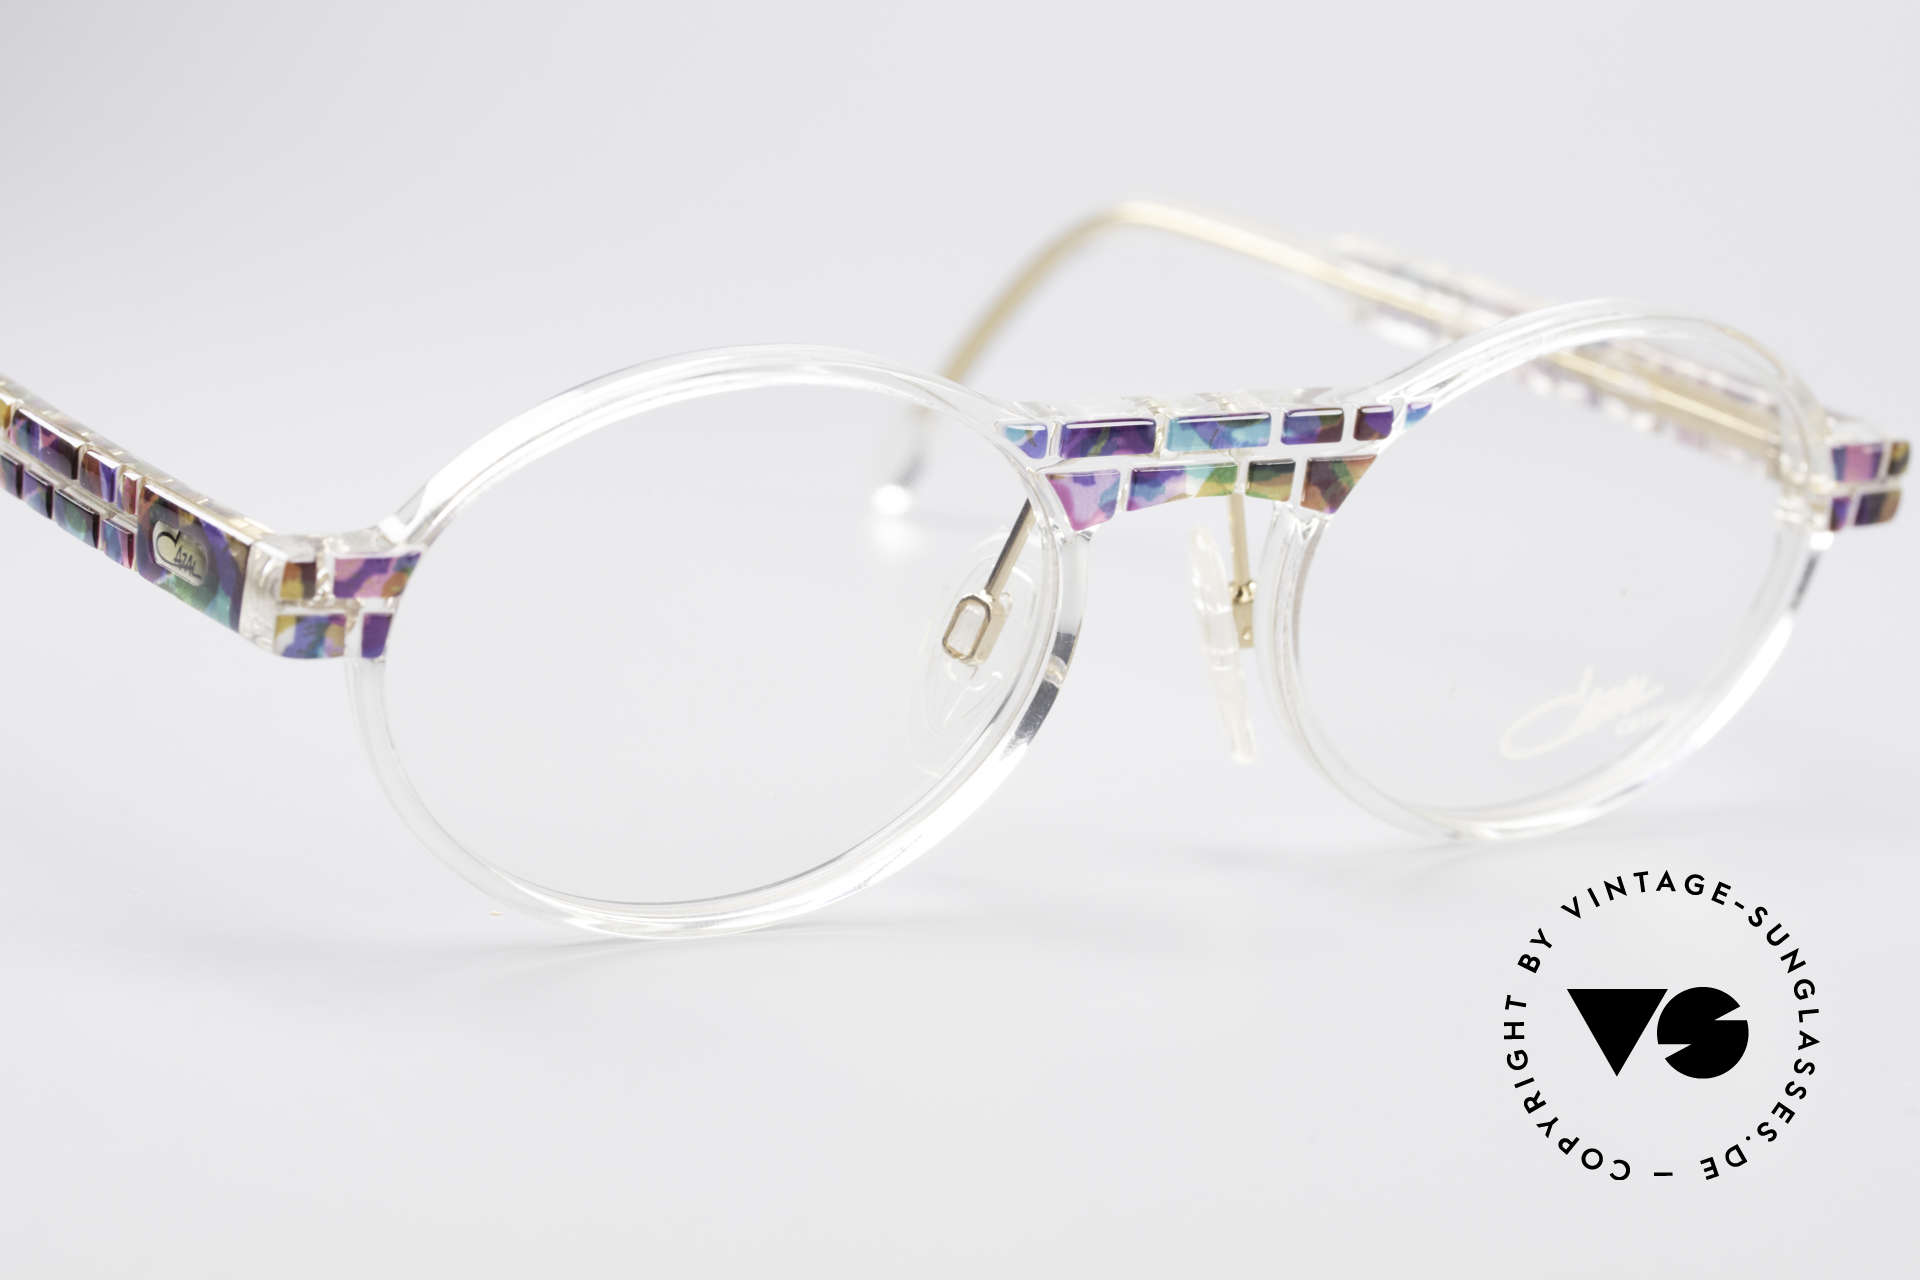 Cazal 510 Crystal Limited Vintage Glasses, unworn (like all our rare vintage Cazal Crystal frames), Made for Men and Women